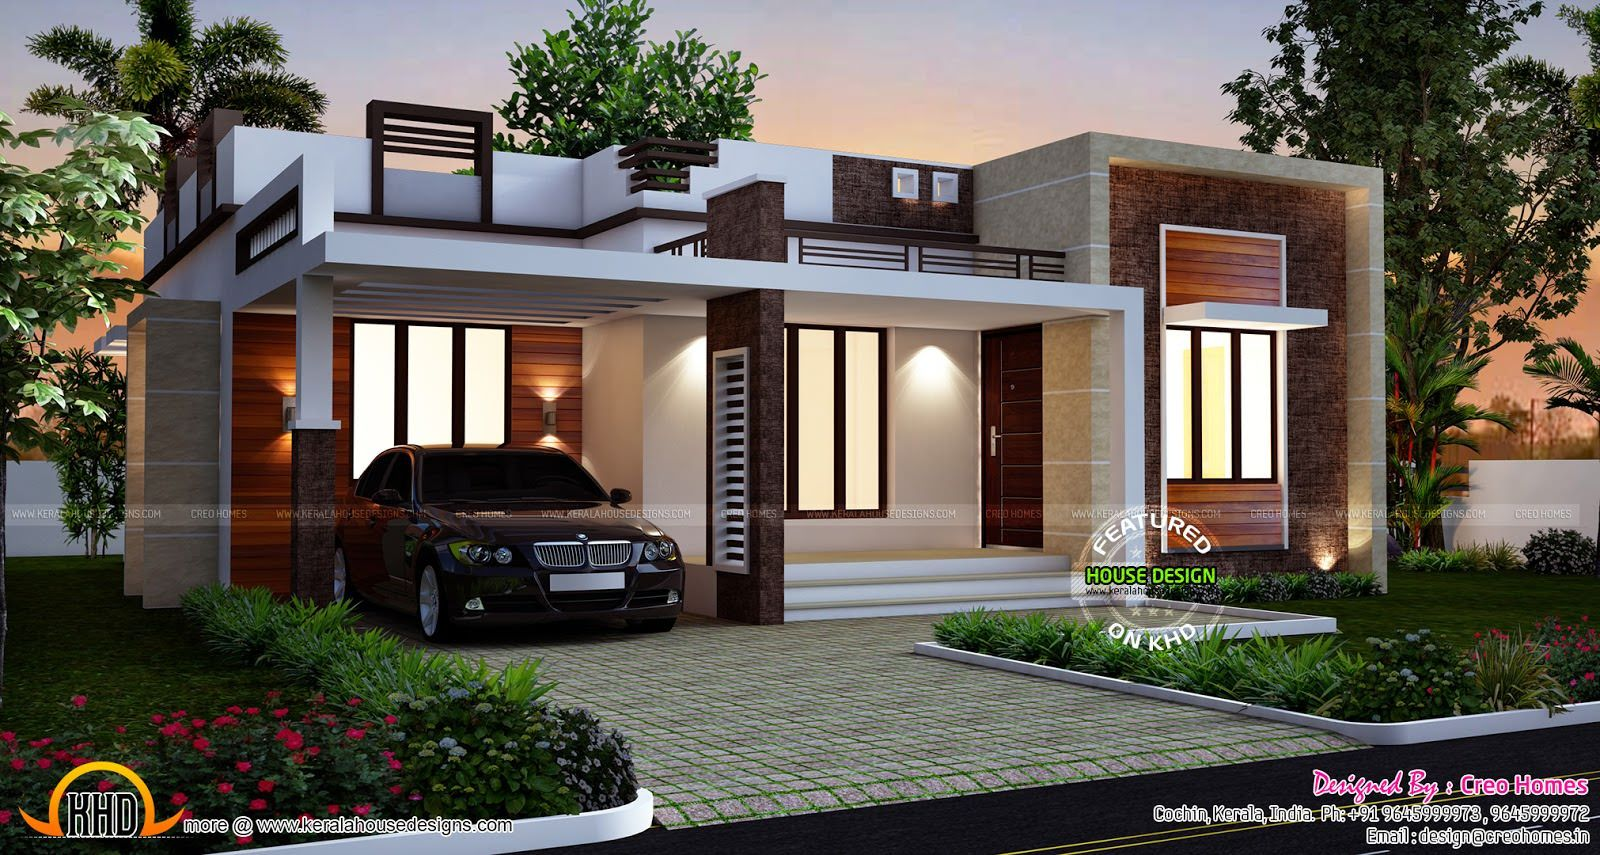 New House Plans With Flat Roof Check More At Http Www Jnnsysy Com House Plans With Flat Roof Kerala House Design House Roof Design Flat Roof House